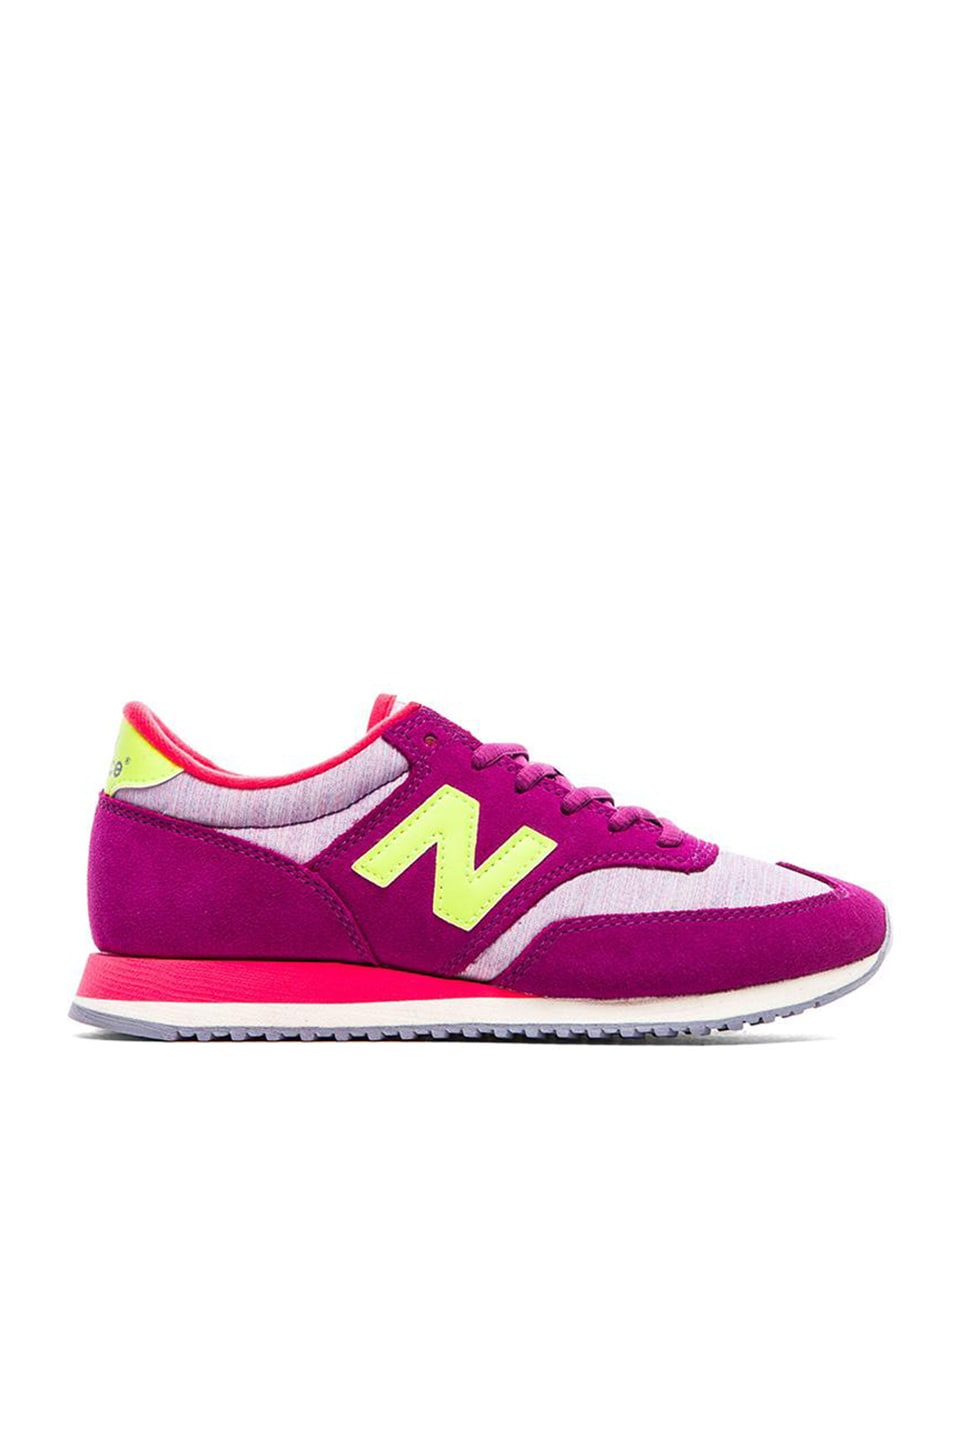 New Balance Capsule Collection in Purple & Yellow